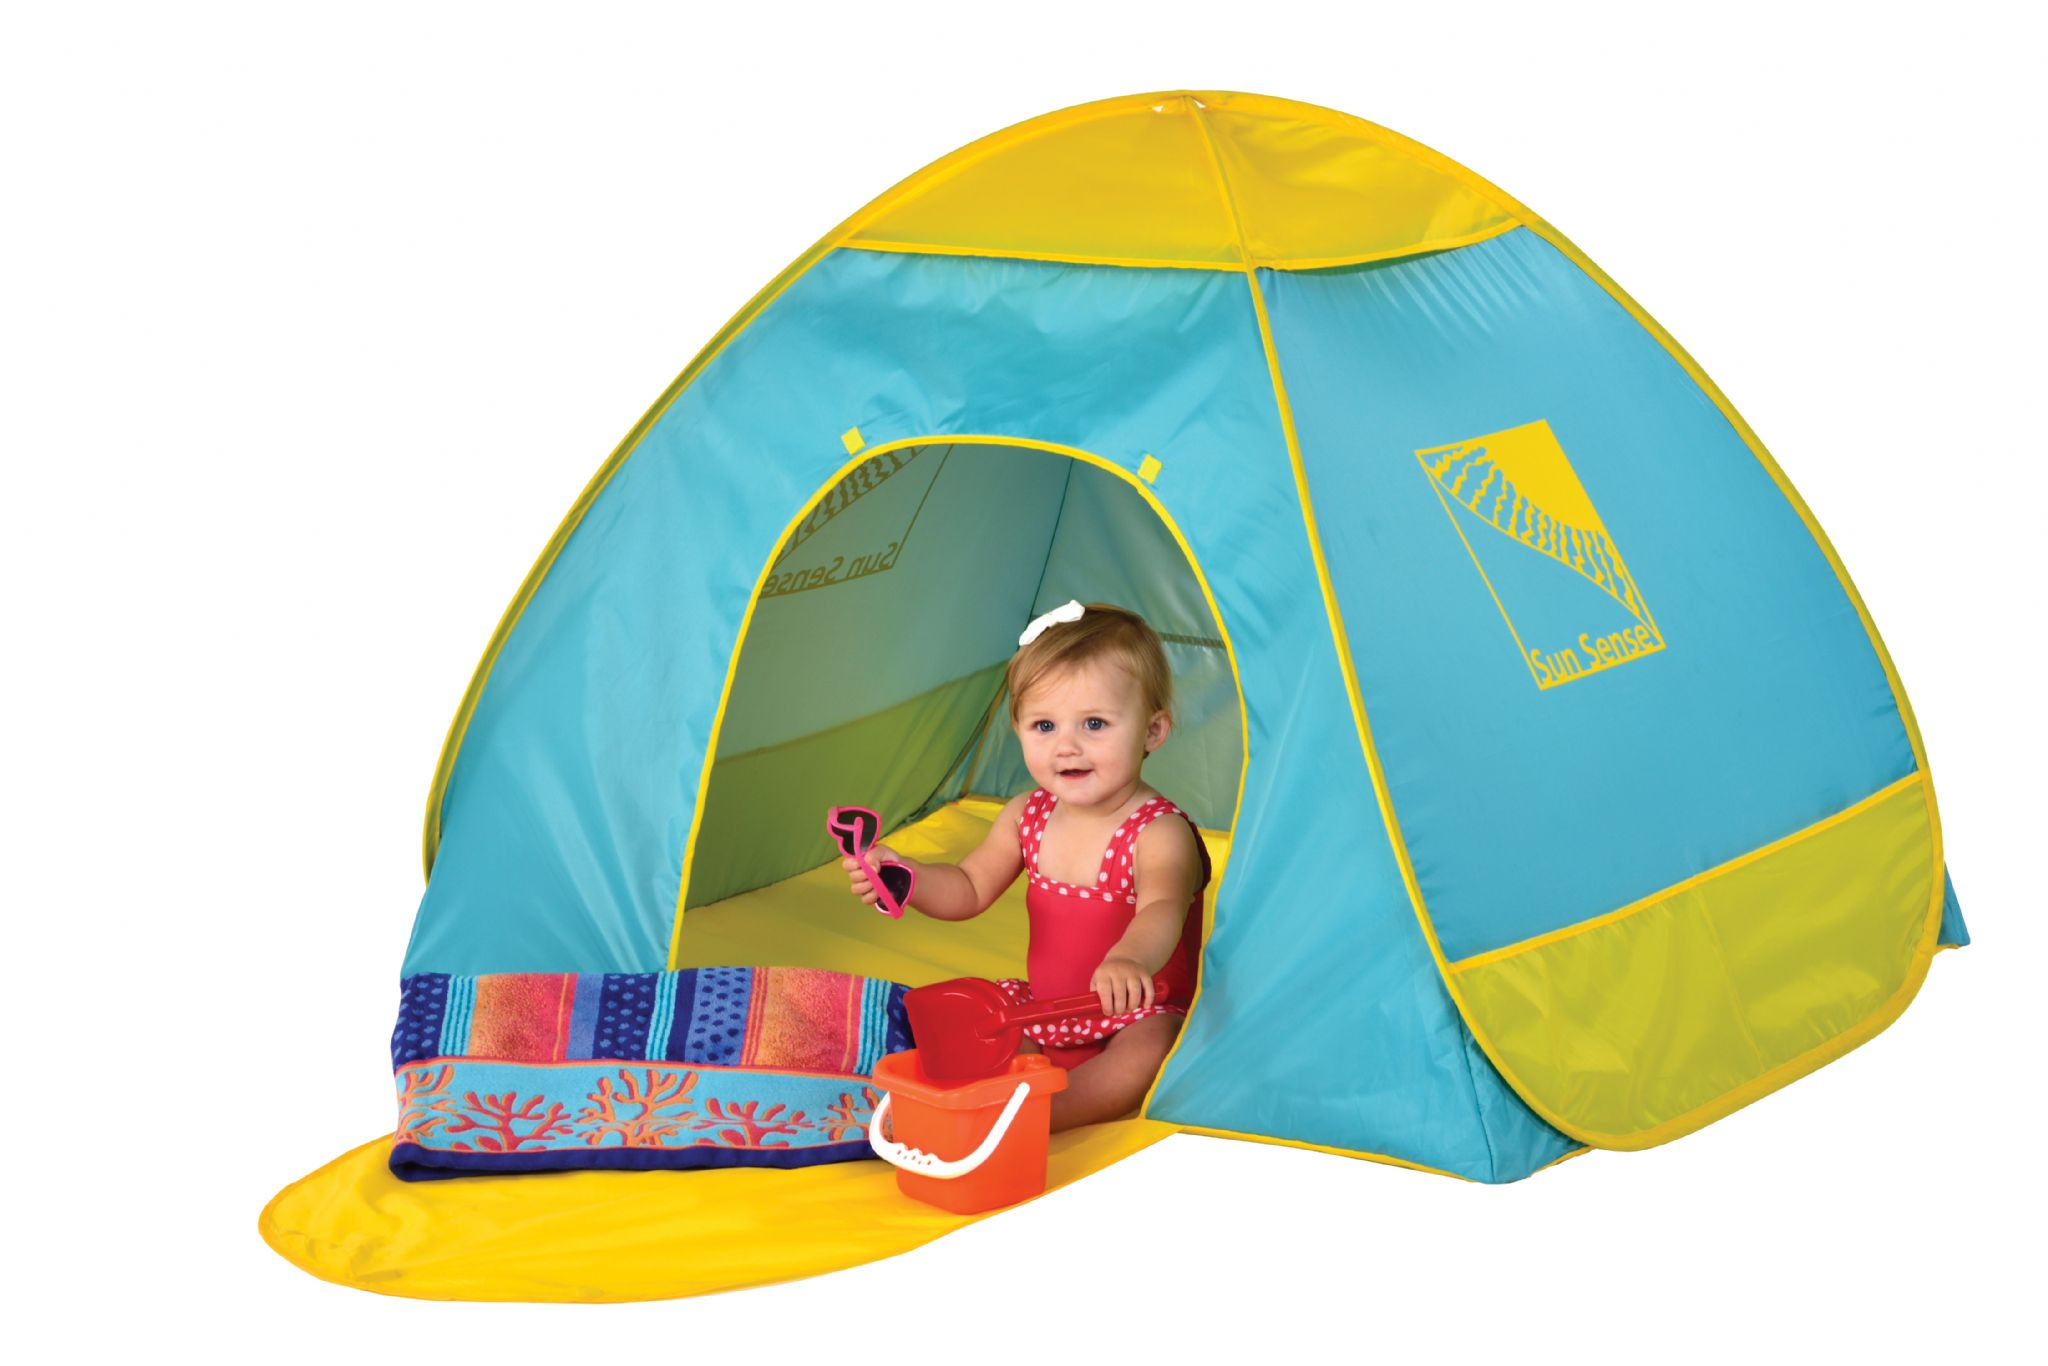 Infant 50 UV UPF Protection Pop Up Beach Garden Tent Play Shade Sun Shelter  sc 1 st  Blyme.co.uk : uv baby sun tent - memphite.com